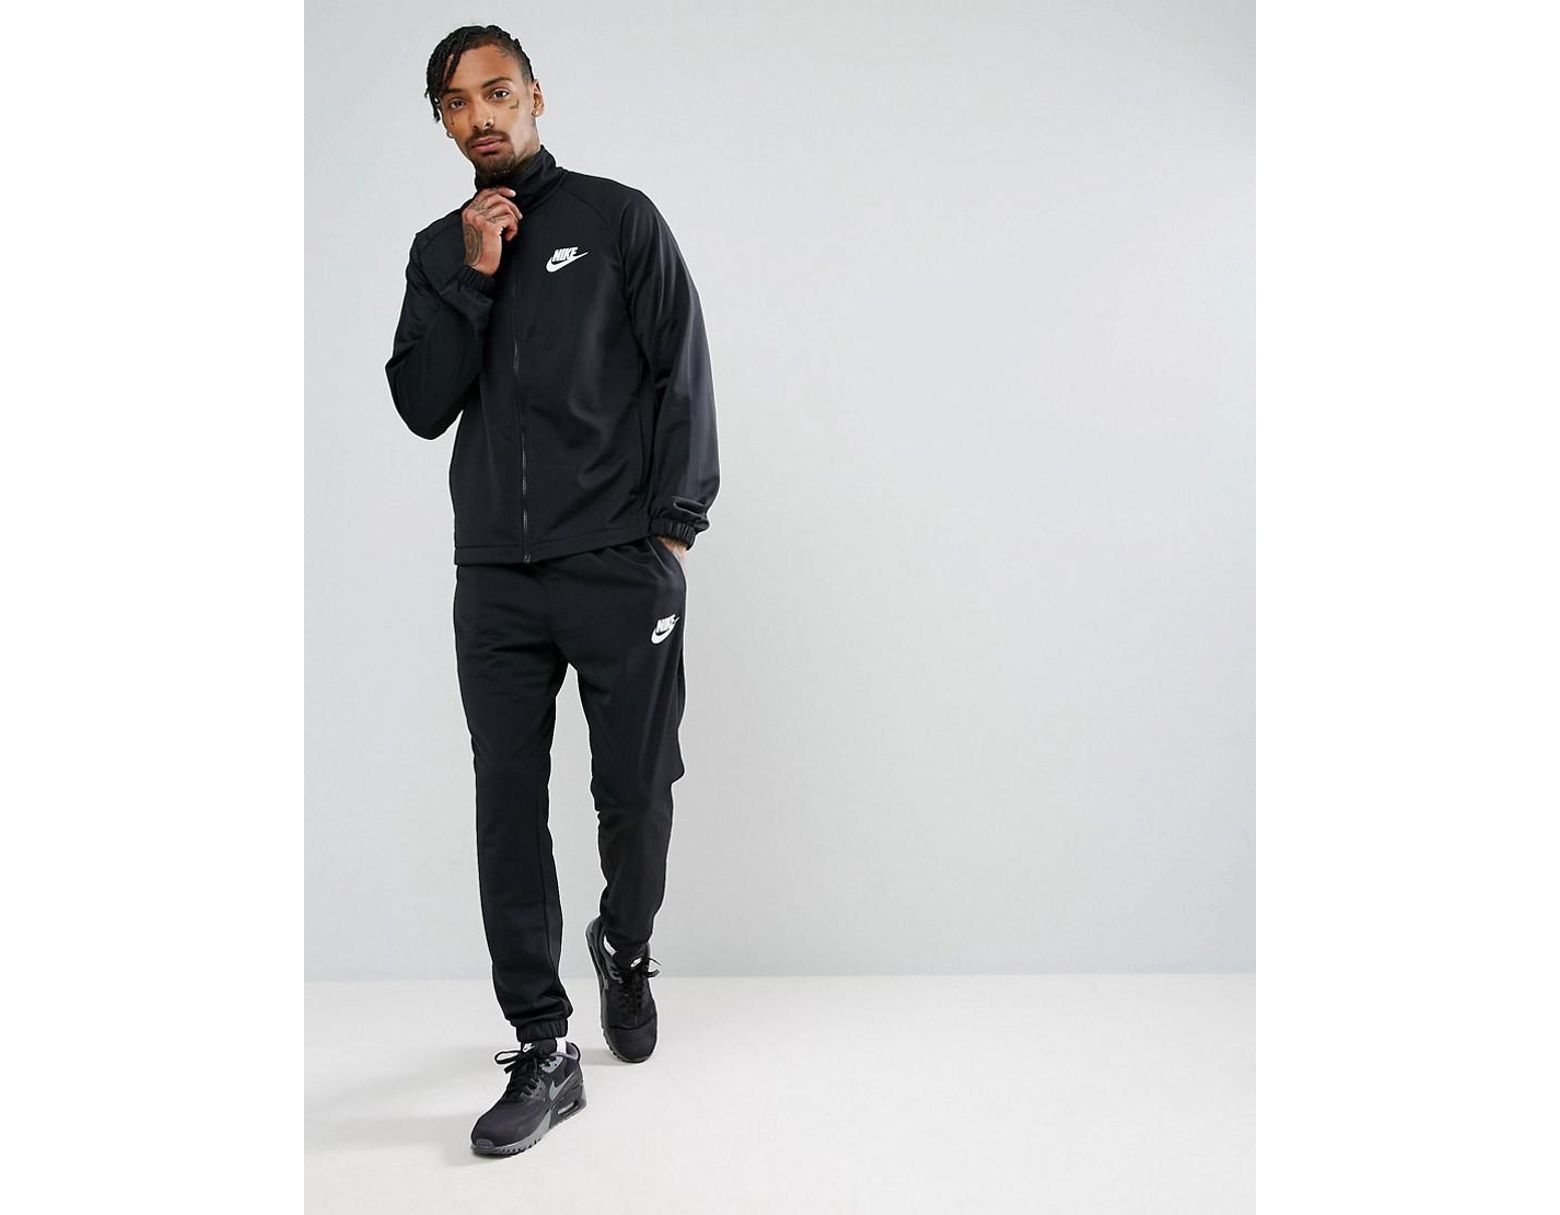 f26f099a Nike Polyknit Tracksuit Set In Black 861780-010 in Black for Men - Lyst